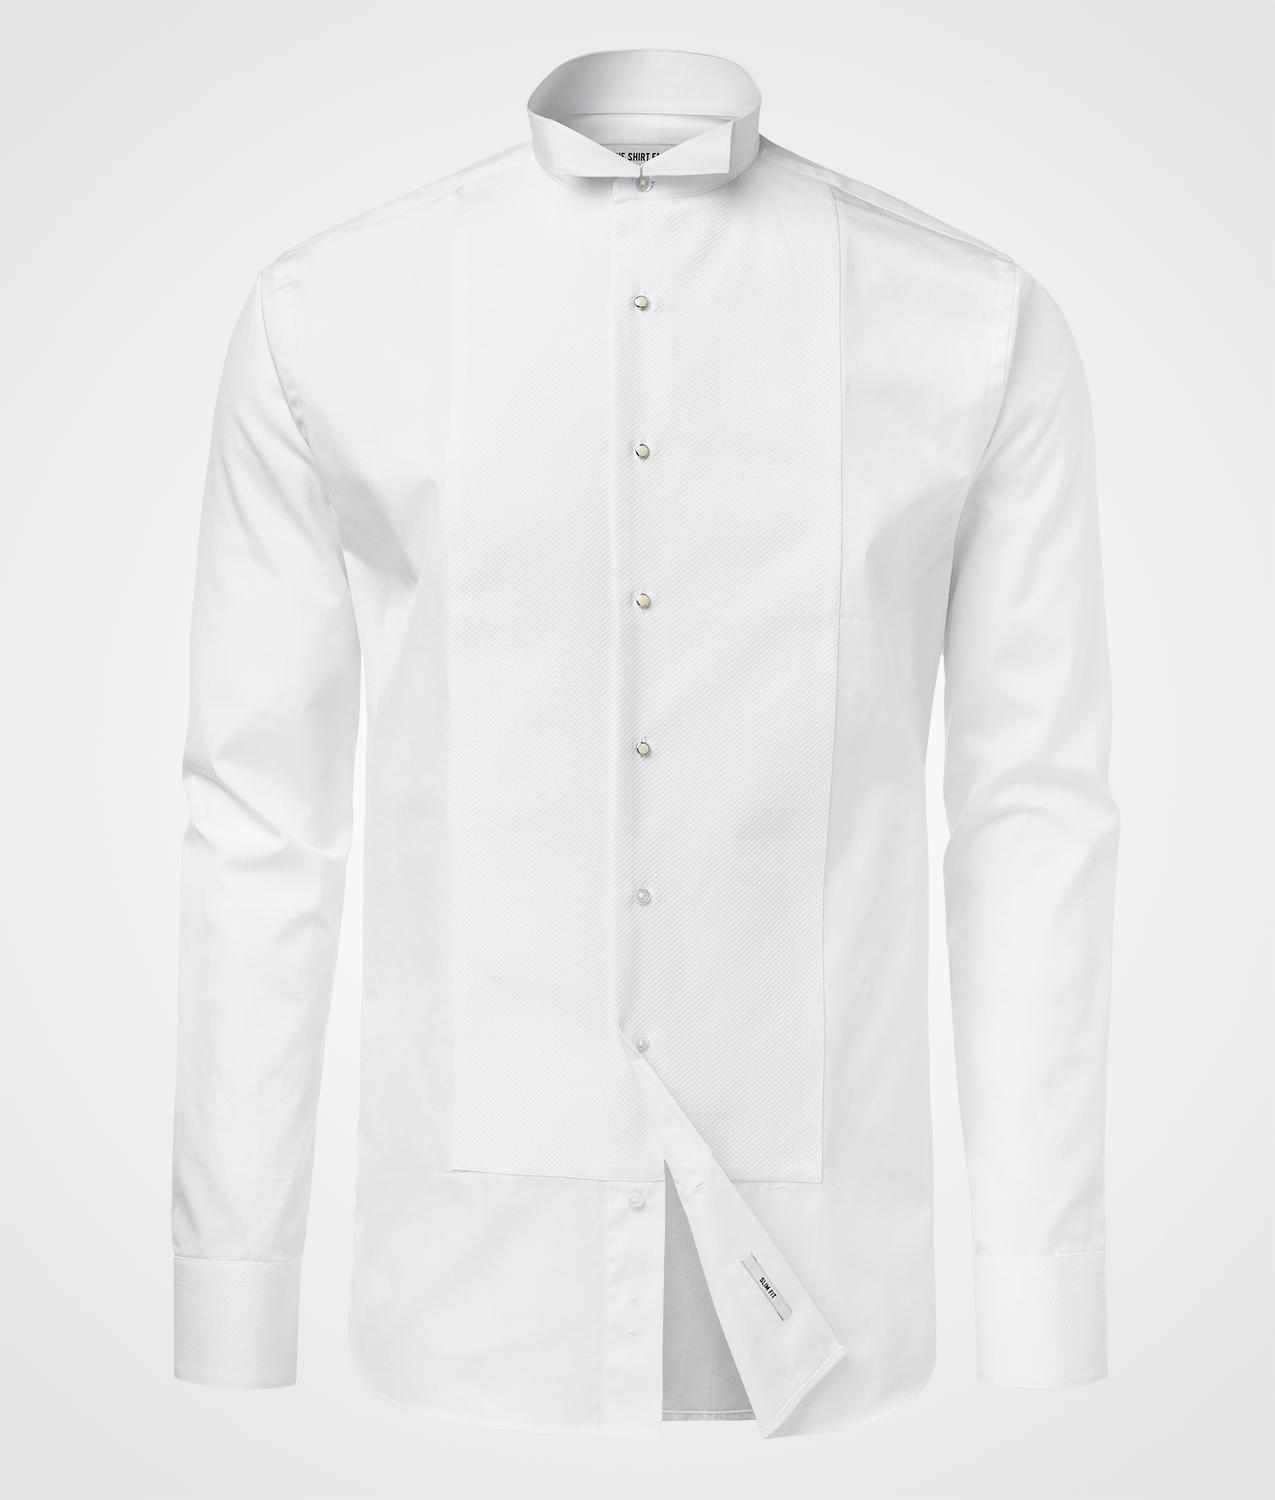 shirt dress shirt the shirt factory shirt dress shirt the shirt factory